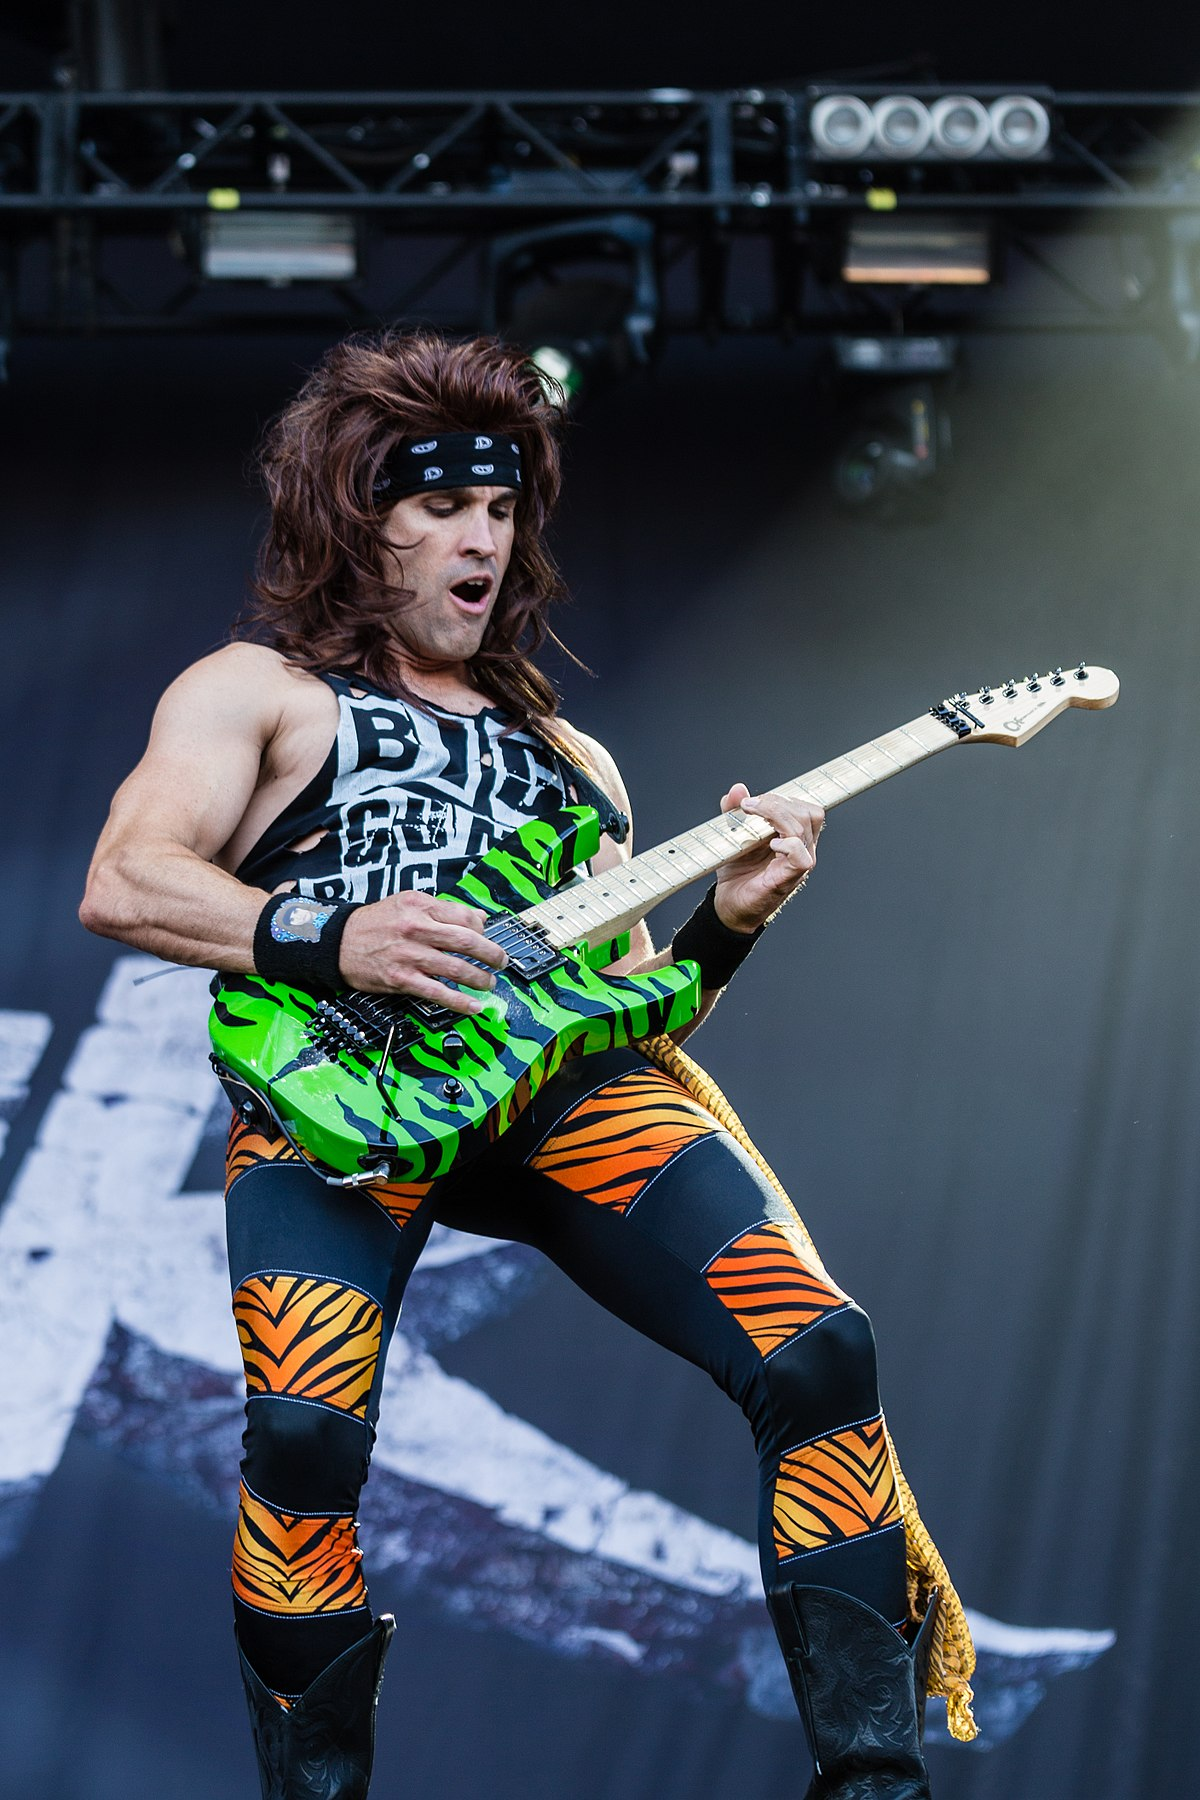 Russ Parrish Wikipedia